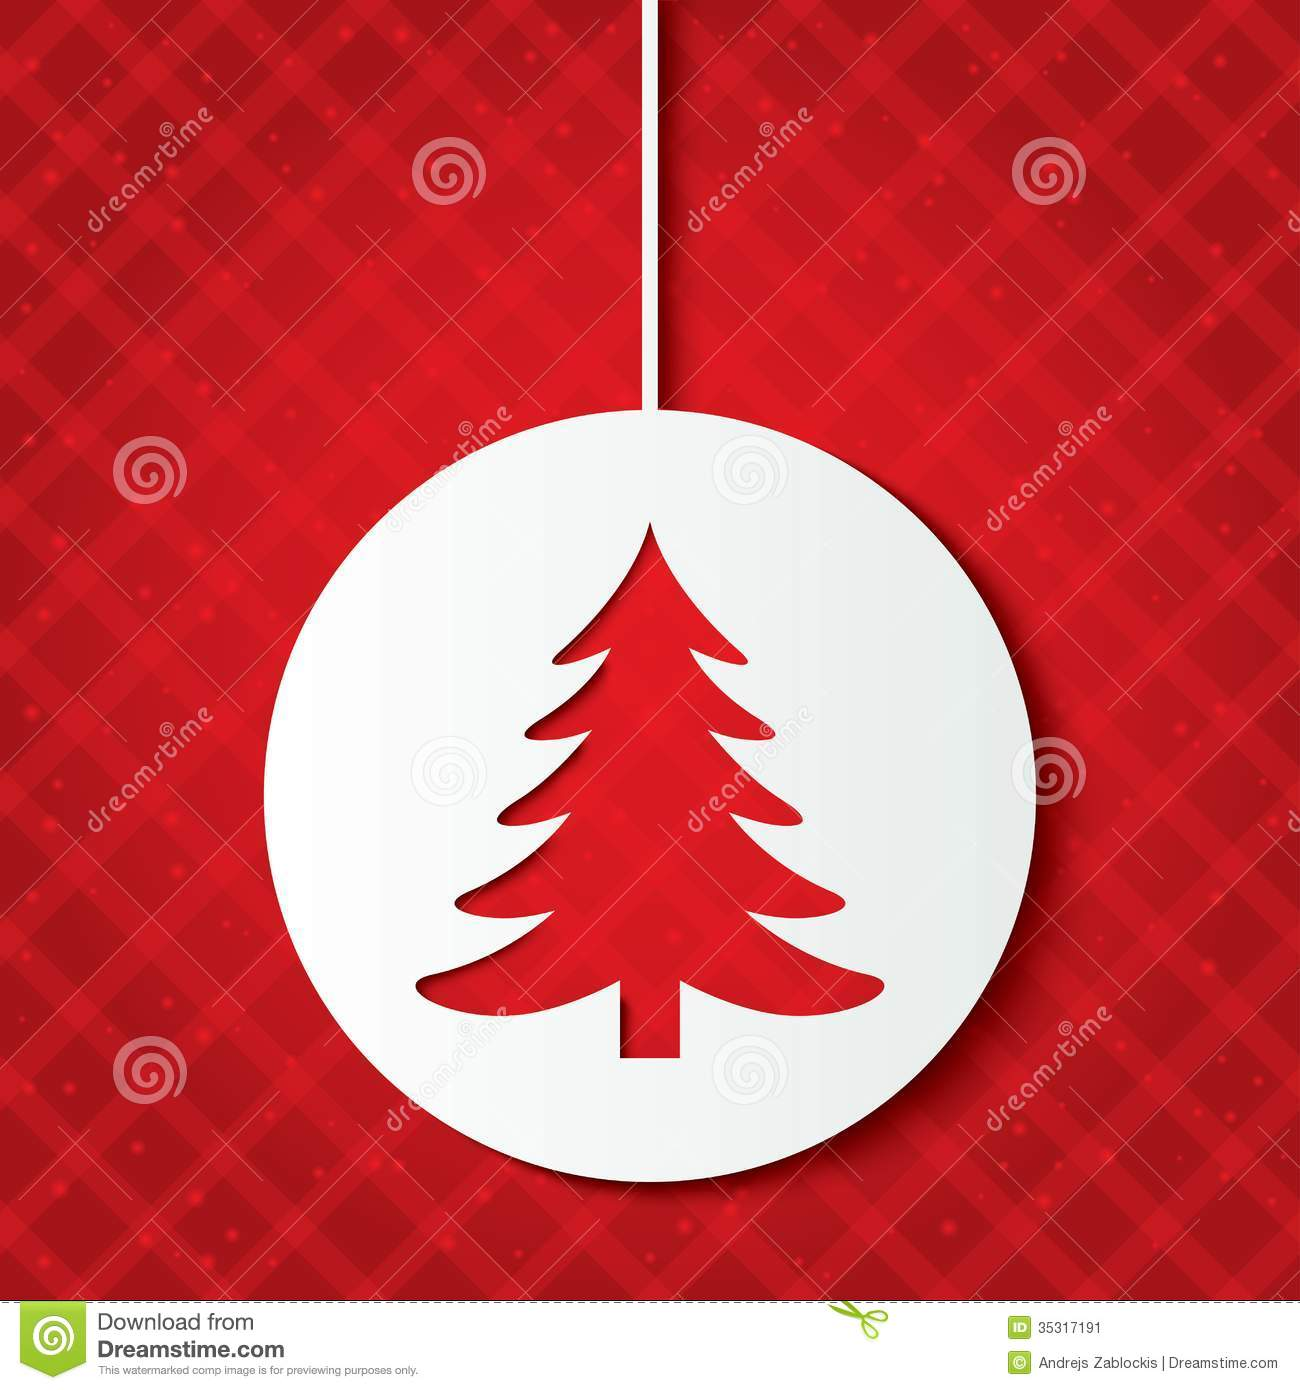 Christmas Ball With Christmas Tree. Cut The Paper. Stock Image - Image ...